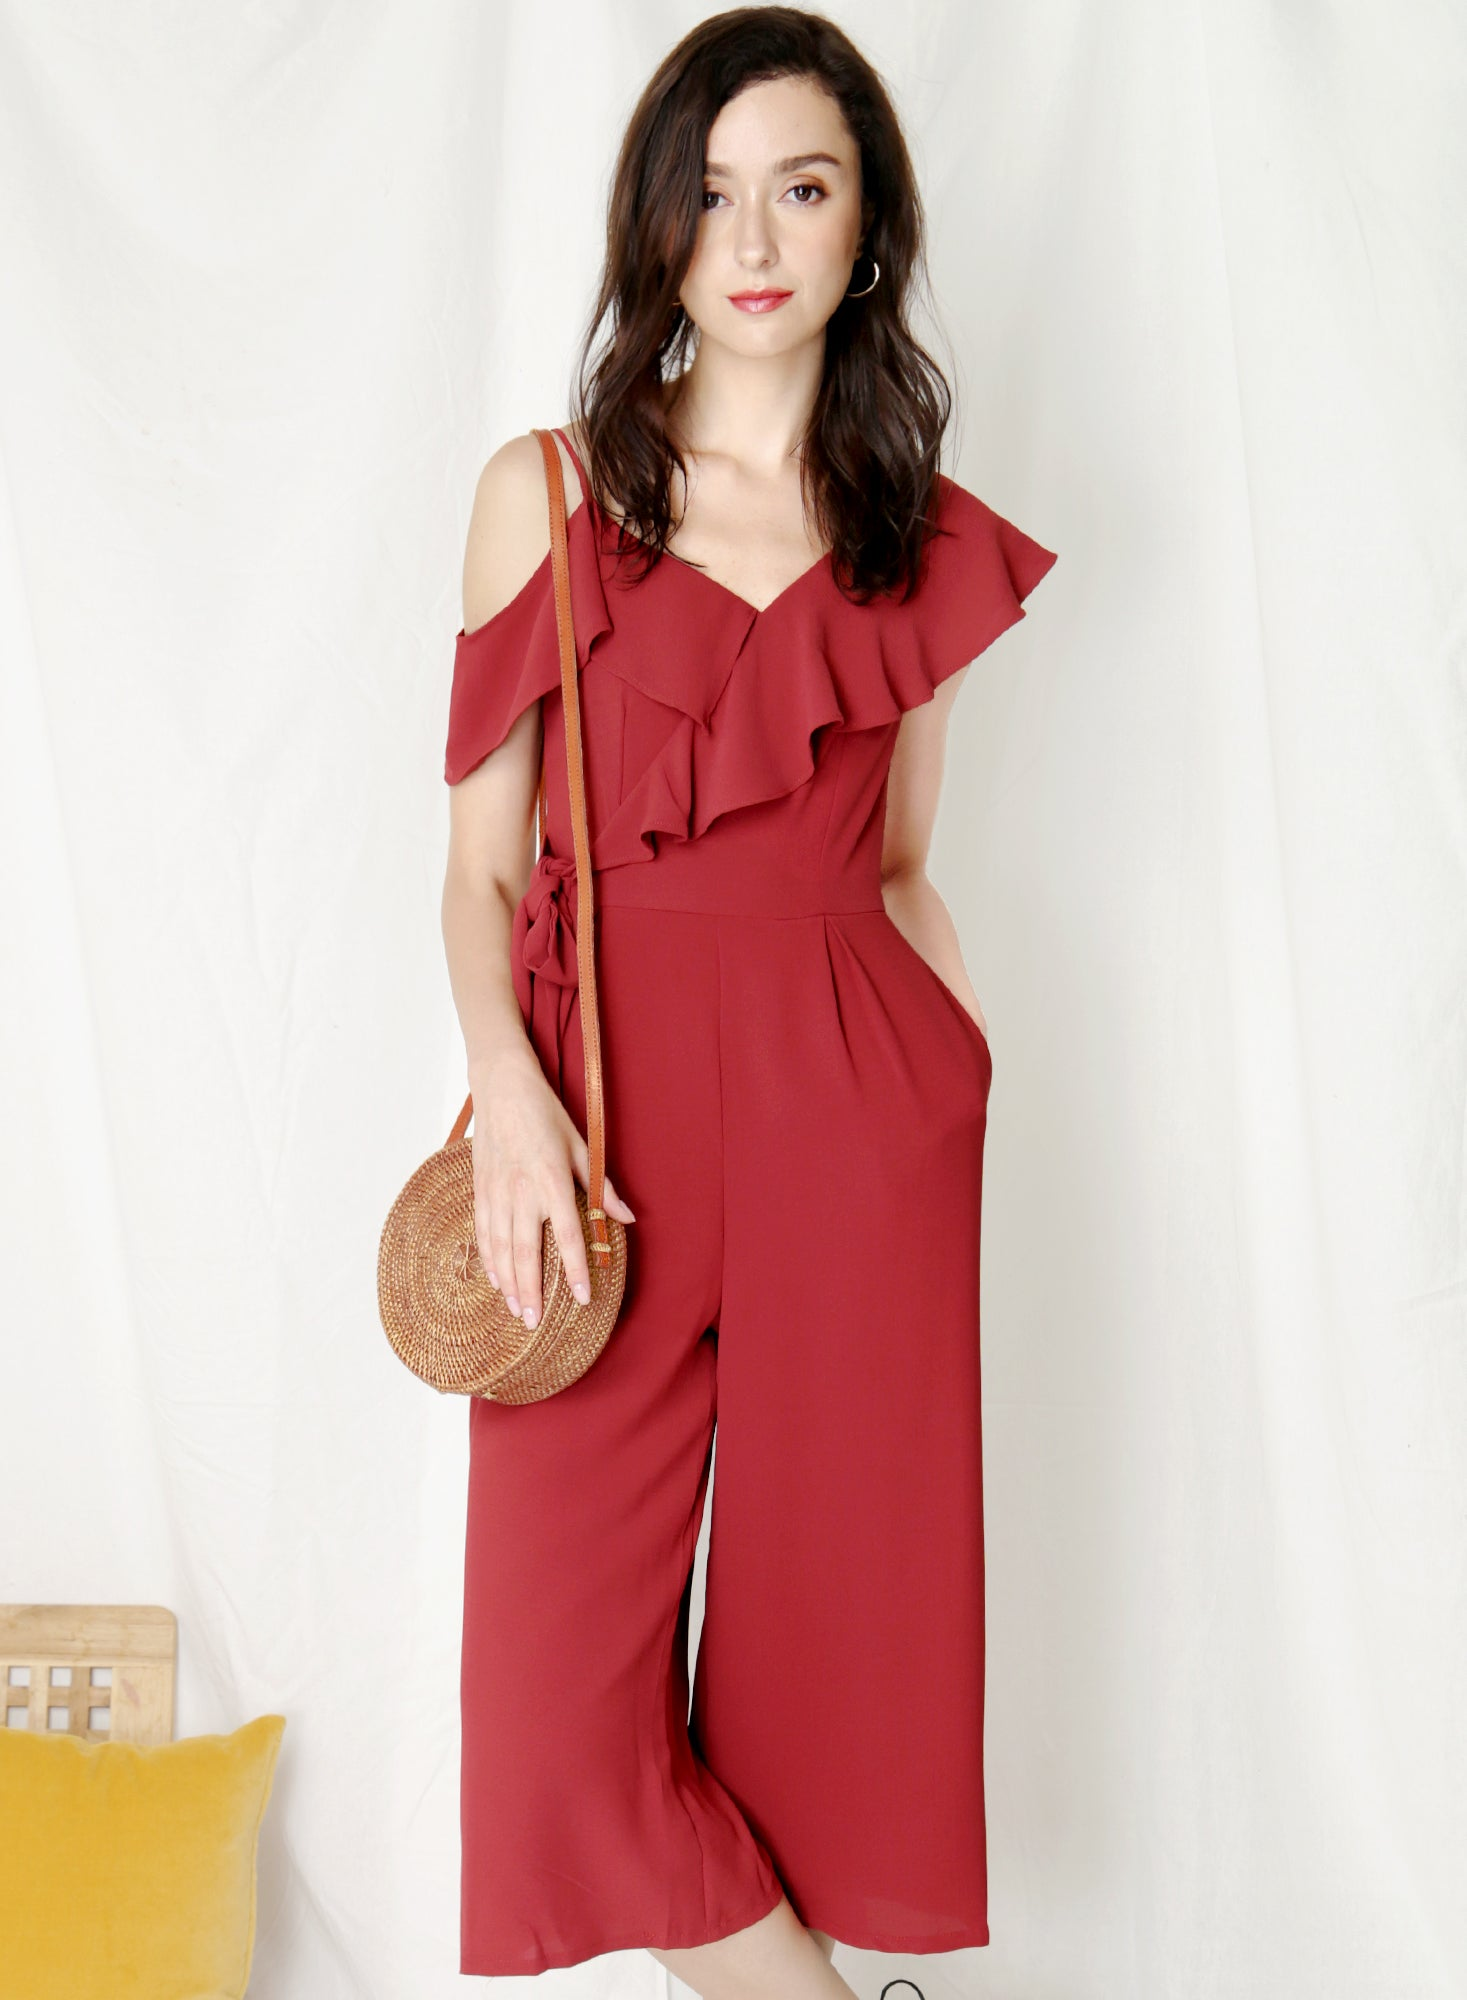 Moonshine Asymmetric Ruffle Jumpsuit (Cherry) at $ 43.50 only sold at And Well Dressed Online Fashion Store Singapore